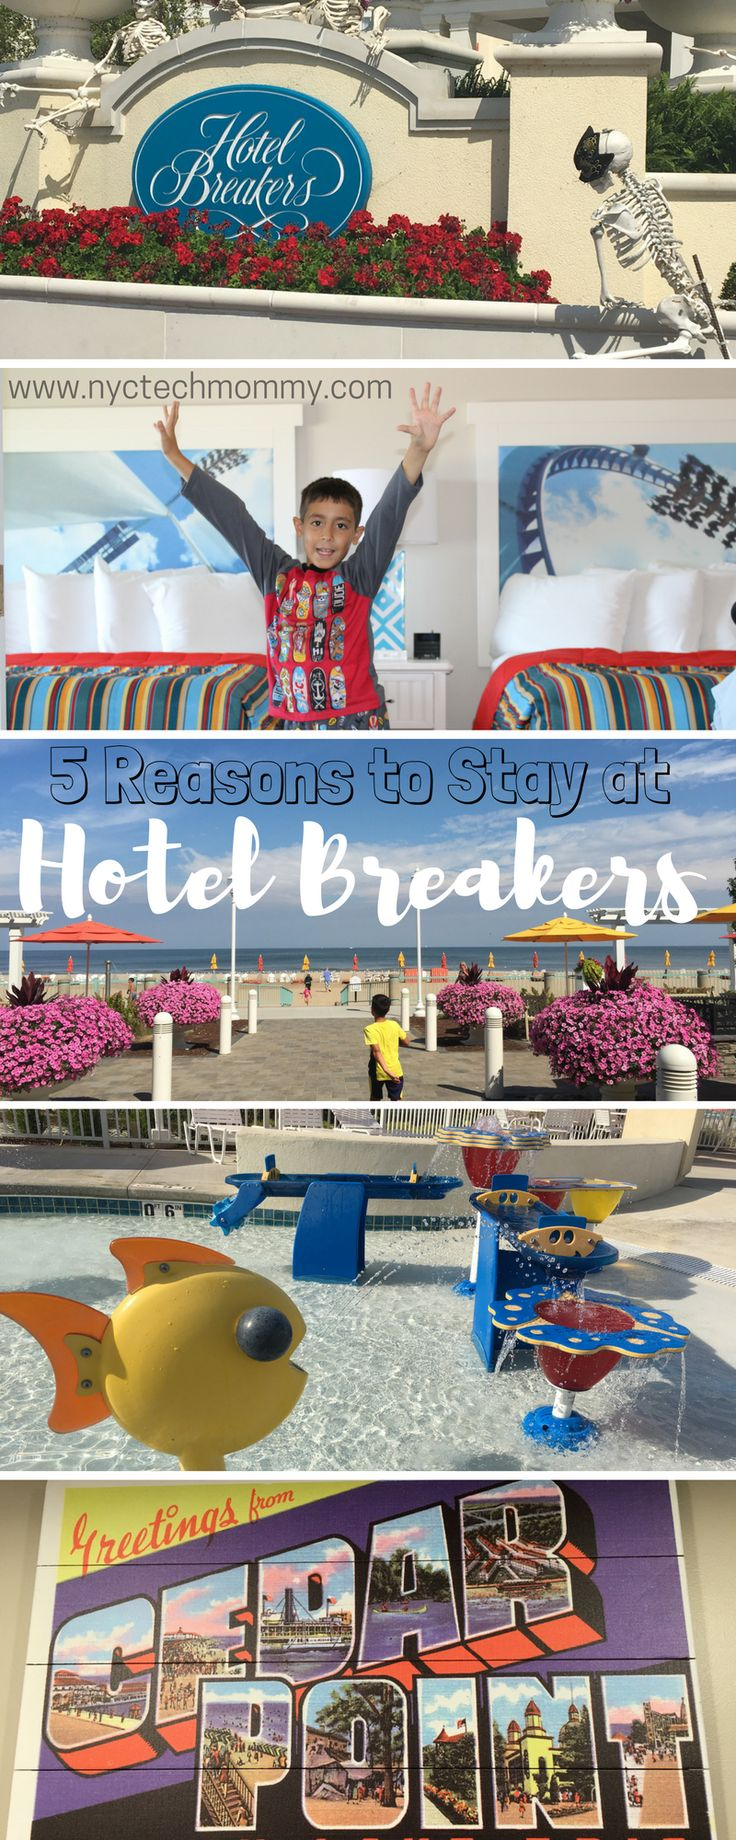 5 Reasons to Stay at Hotel Breakers - Cedar Point